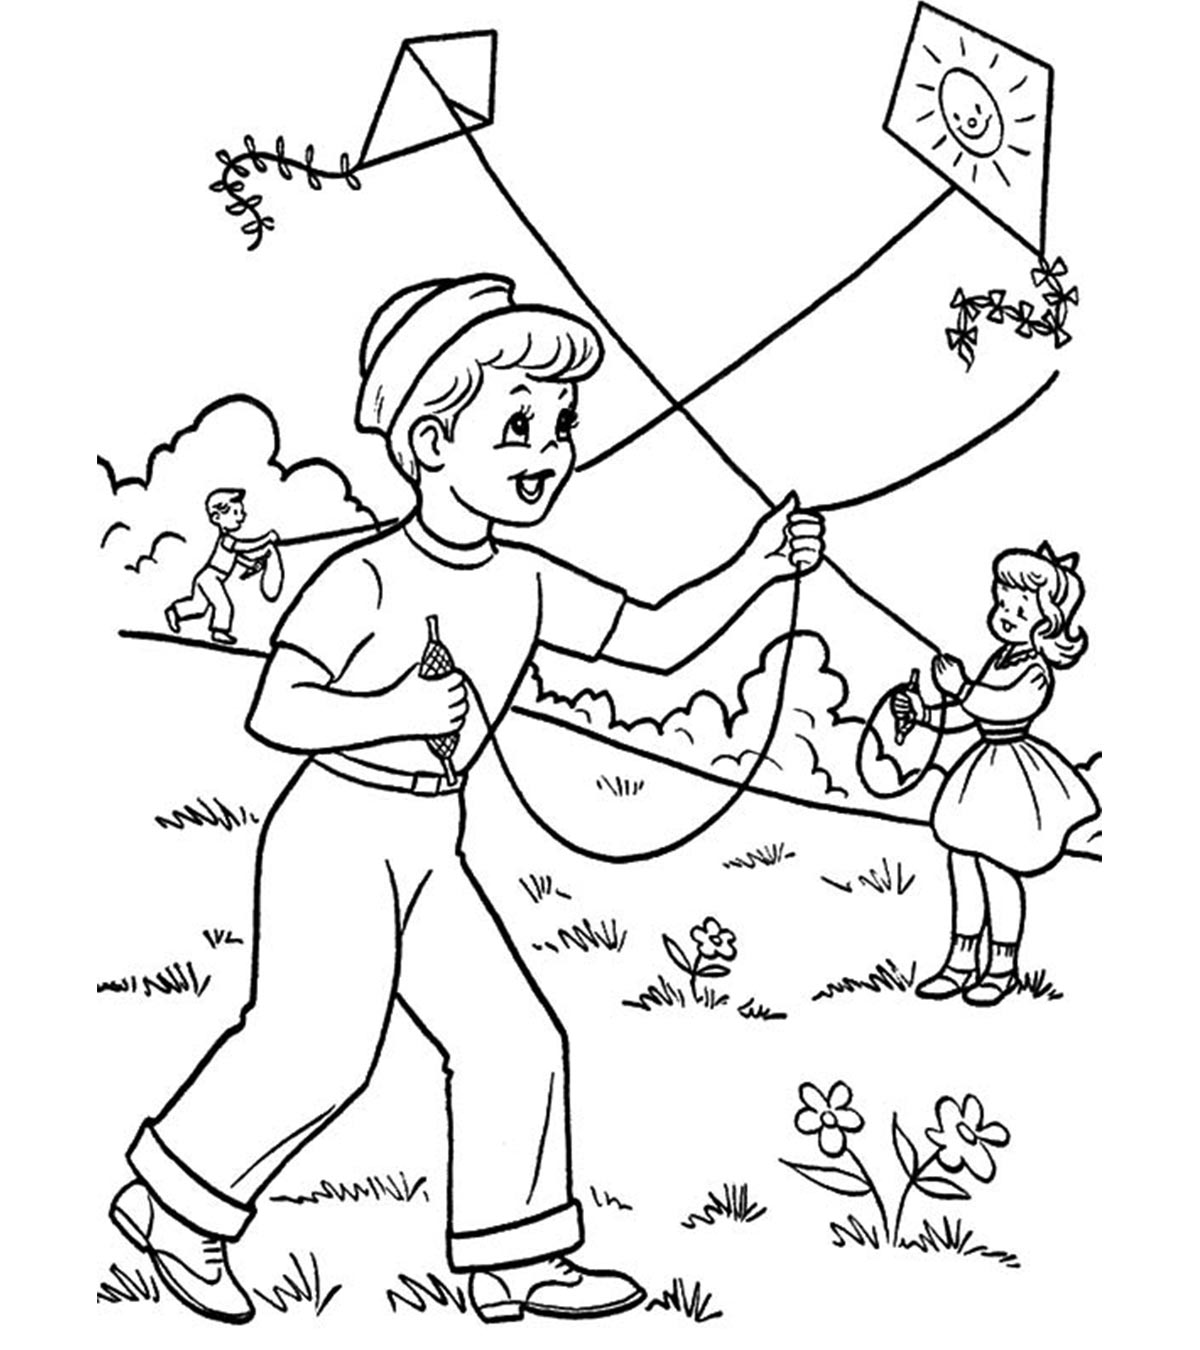 Summer coloring pages to download and print for free | Summer ... | 1350x1200